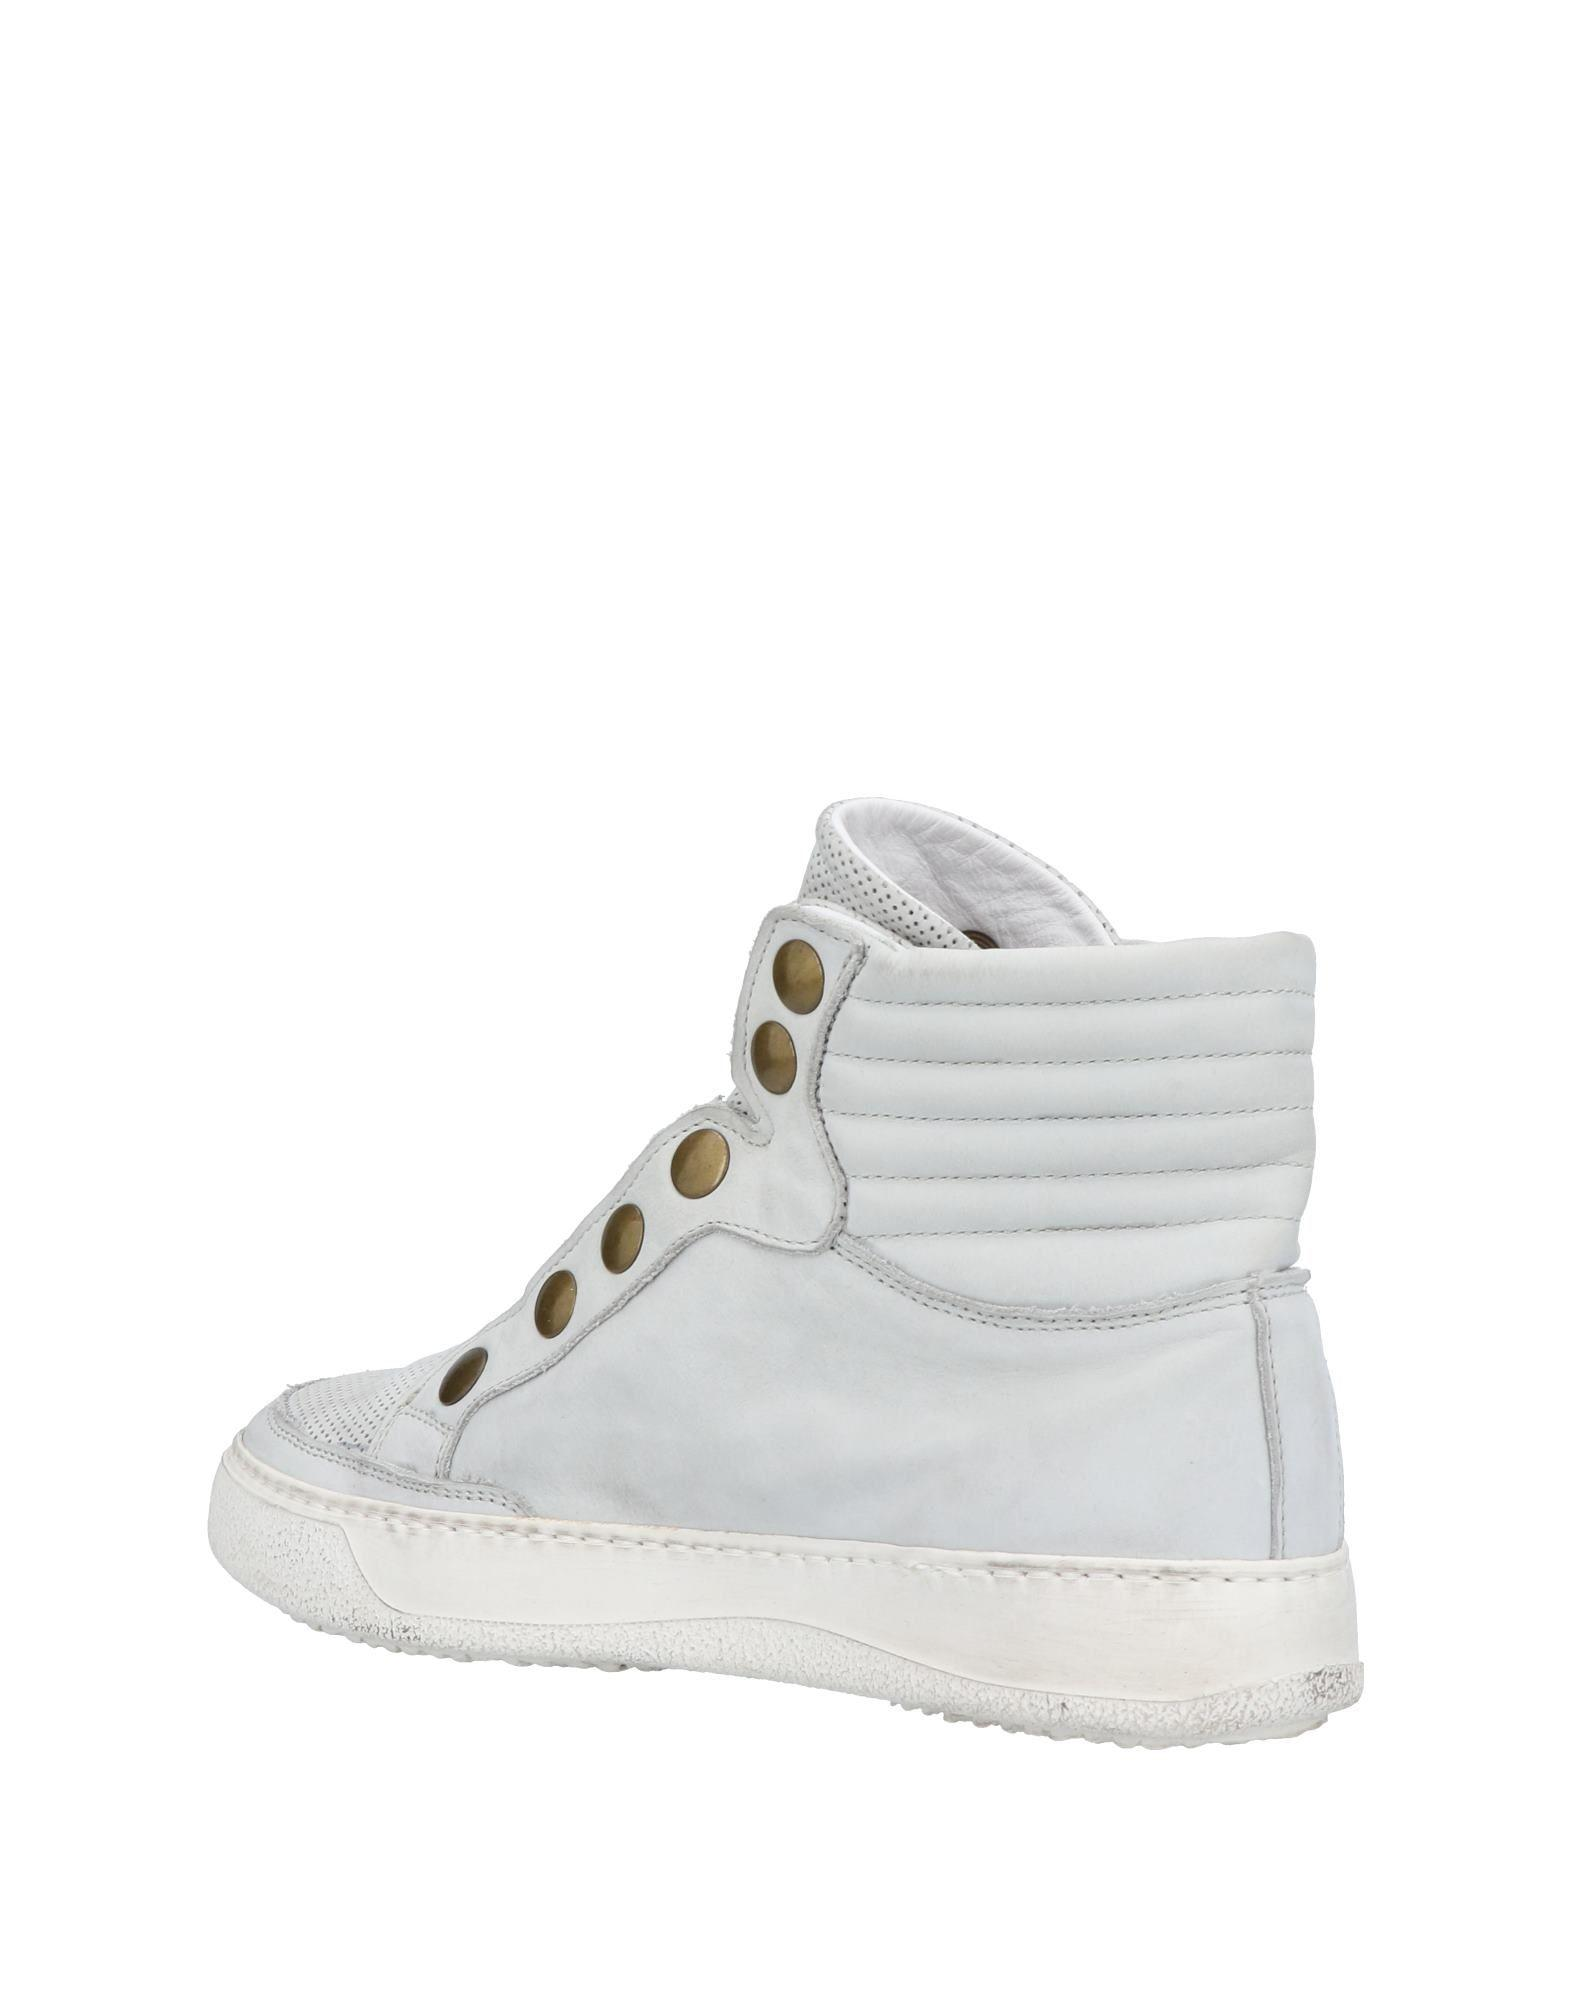 Bruno Bordese Leather High-tops & Sneakers in Light Grey (Grey)